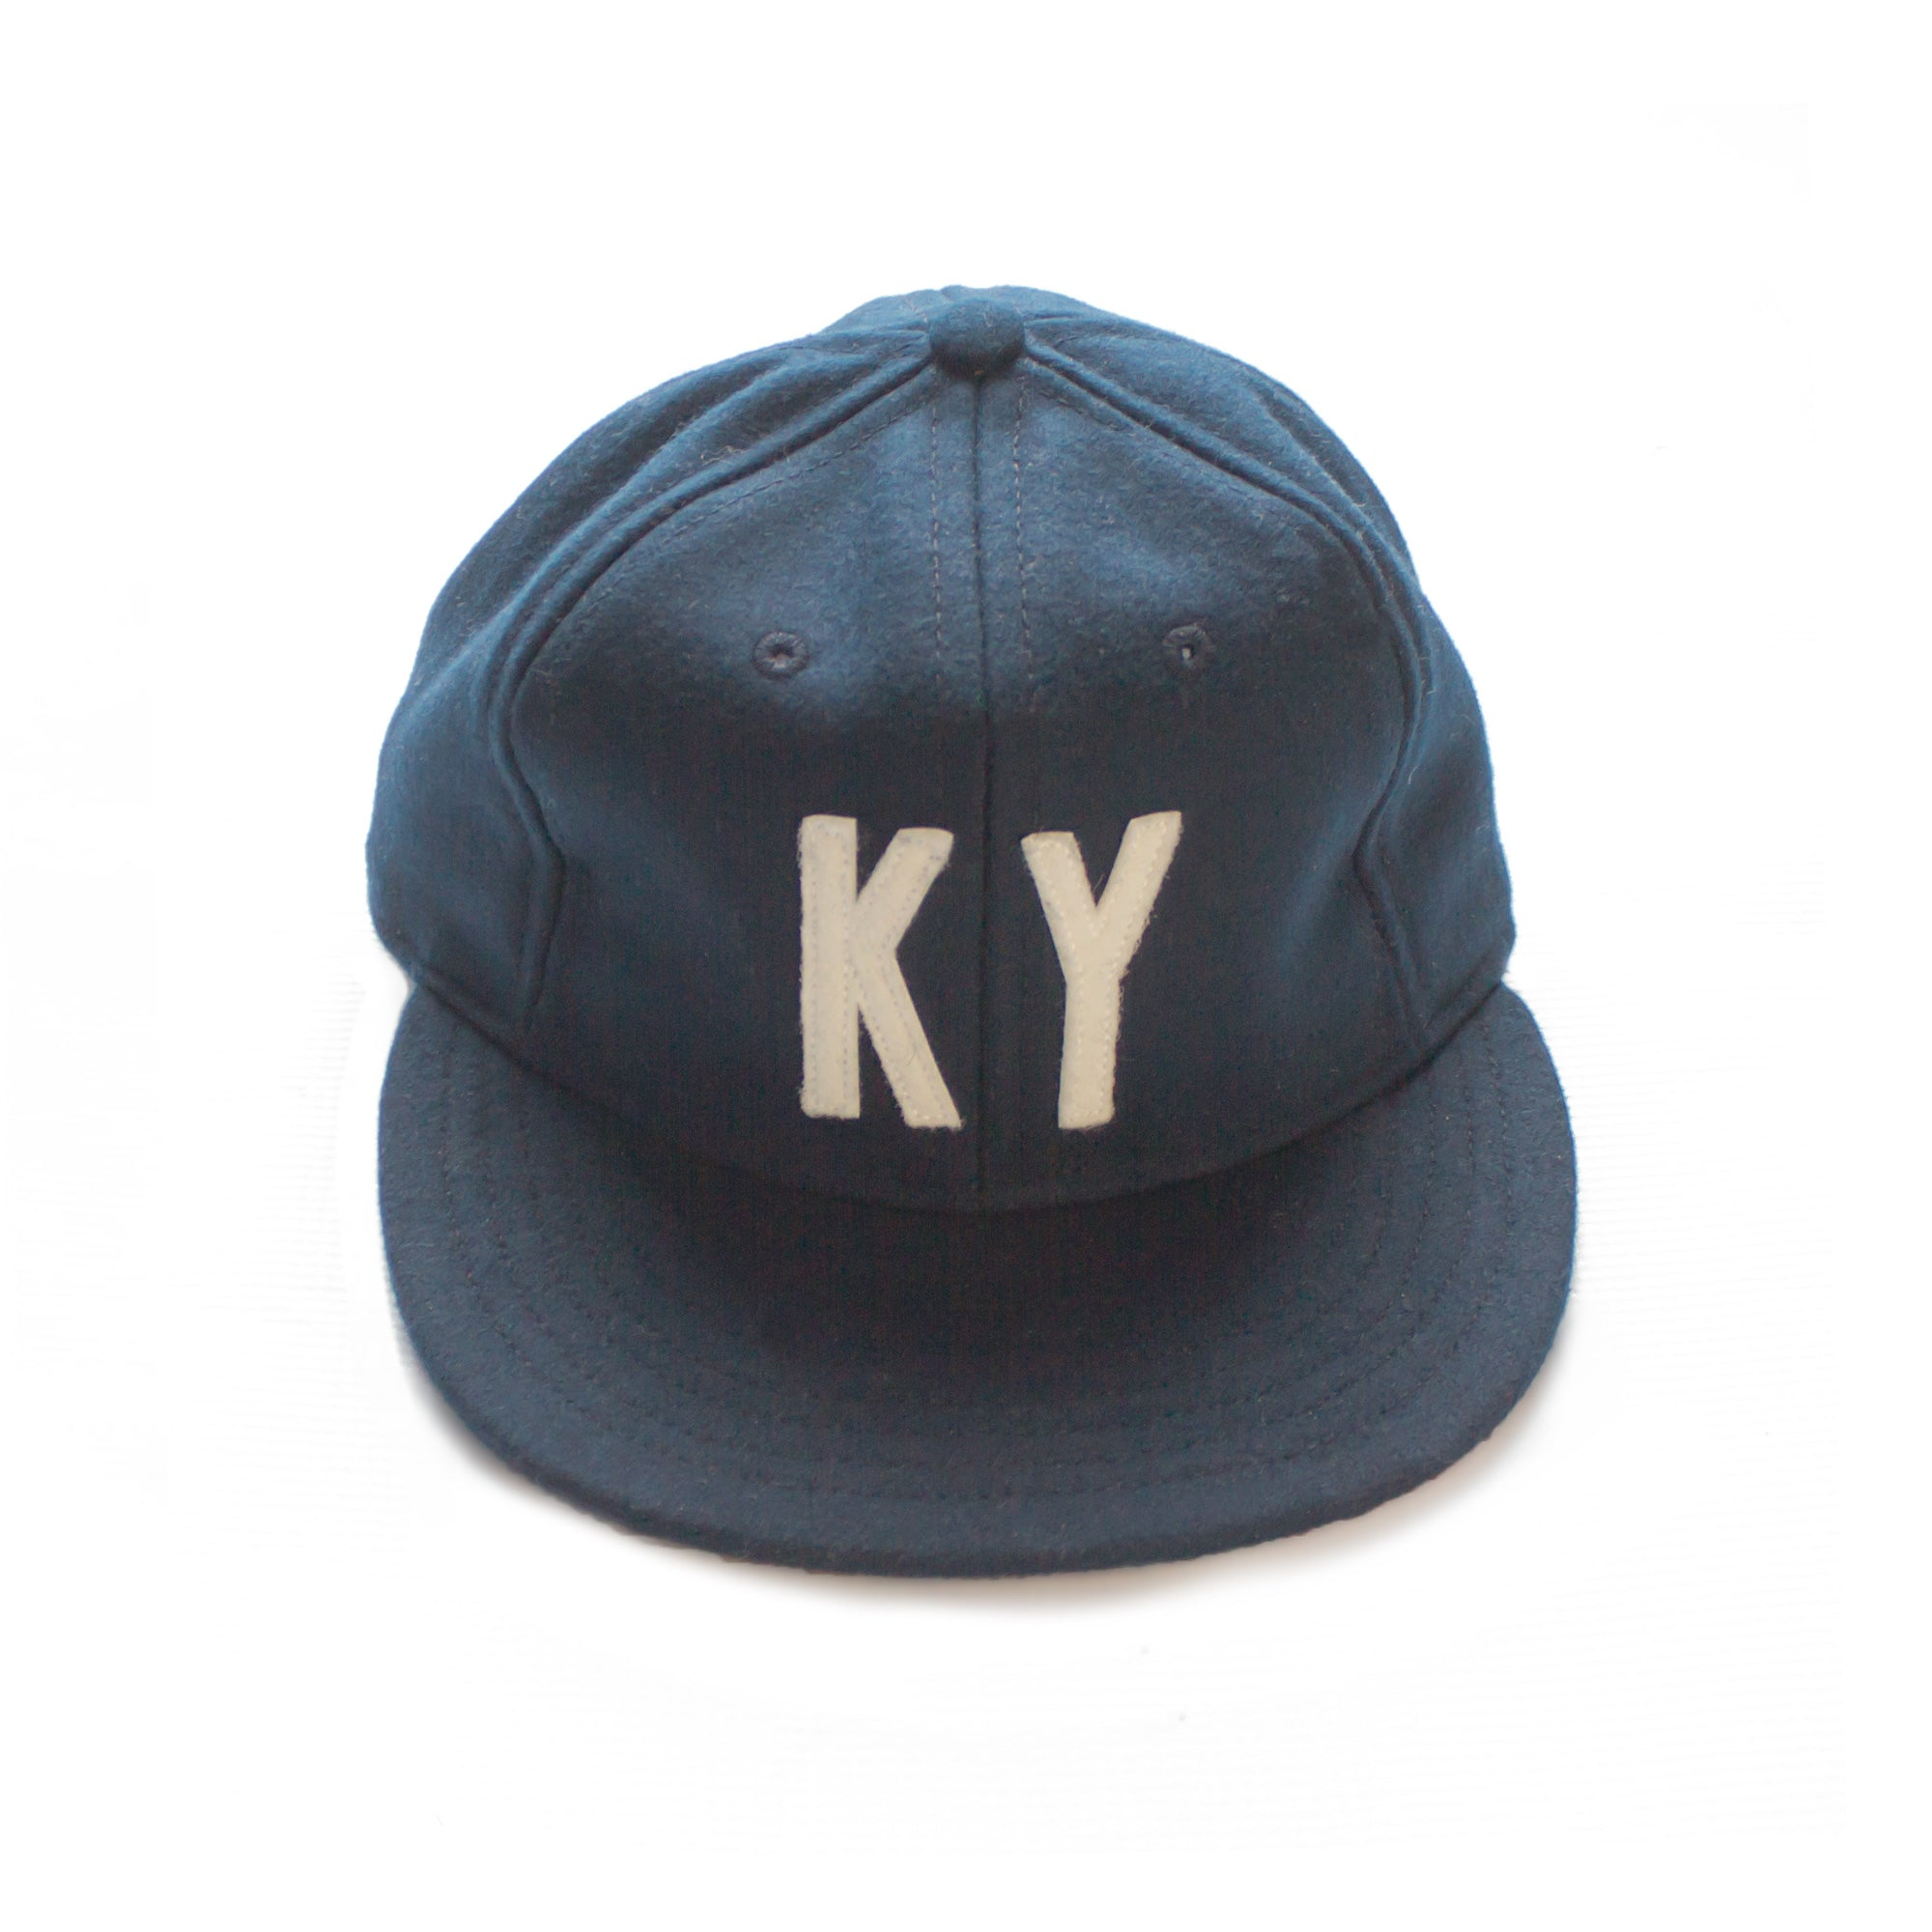 KY Ebbets Hat (Navy and White)-Hat-KY for KY Store 7c505c45f4d